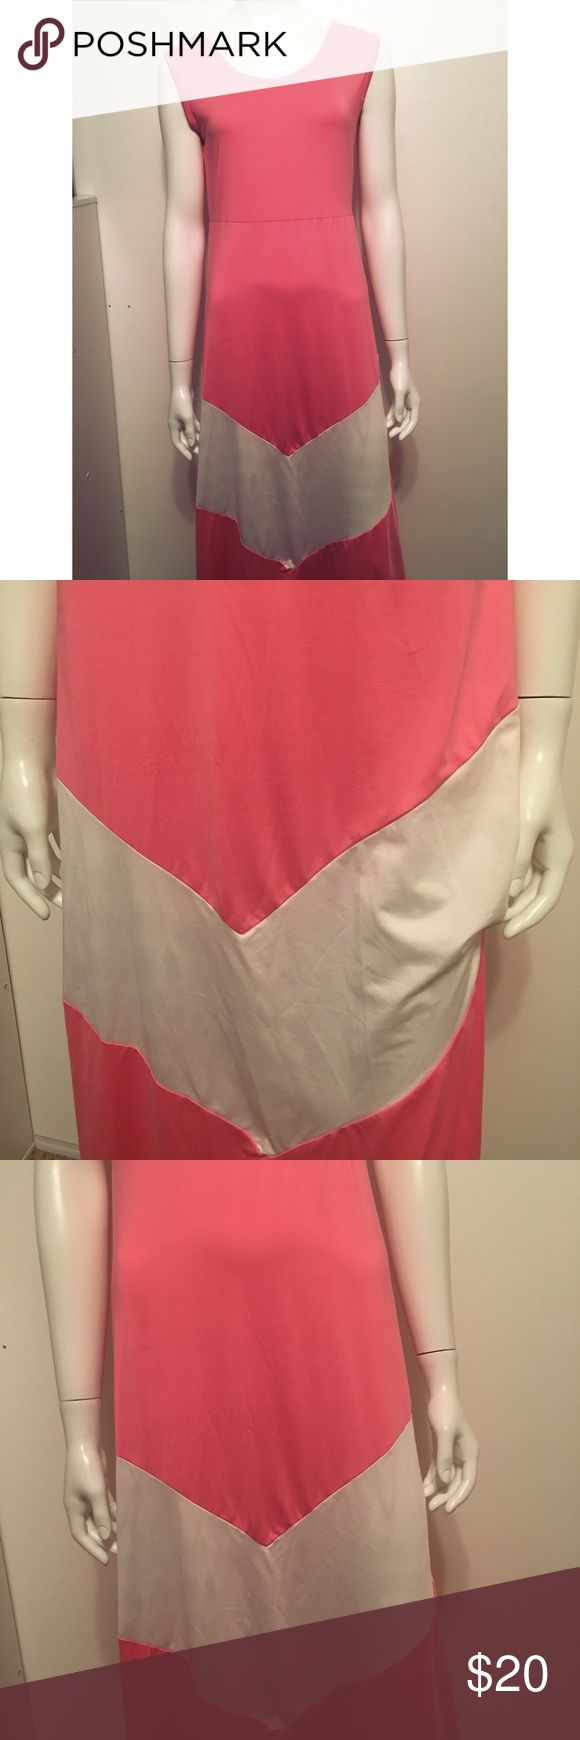 Maxi dress In good condition maxi dress  💖Maybe salmon pink color and white  💖Size M 💖Polyester and spandex  💖Offers are welcome  💖Shipping days M-Sat 9am-4pm (PT)  Bundle and save Dresses Maxi